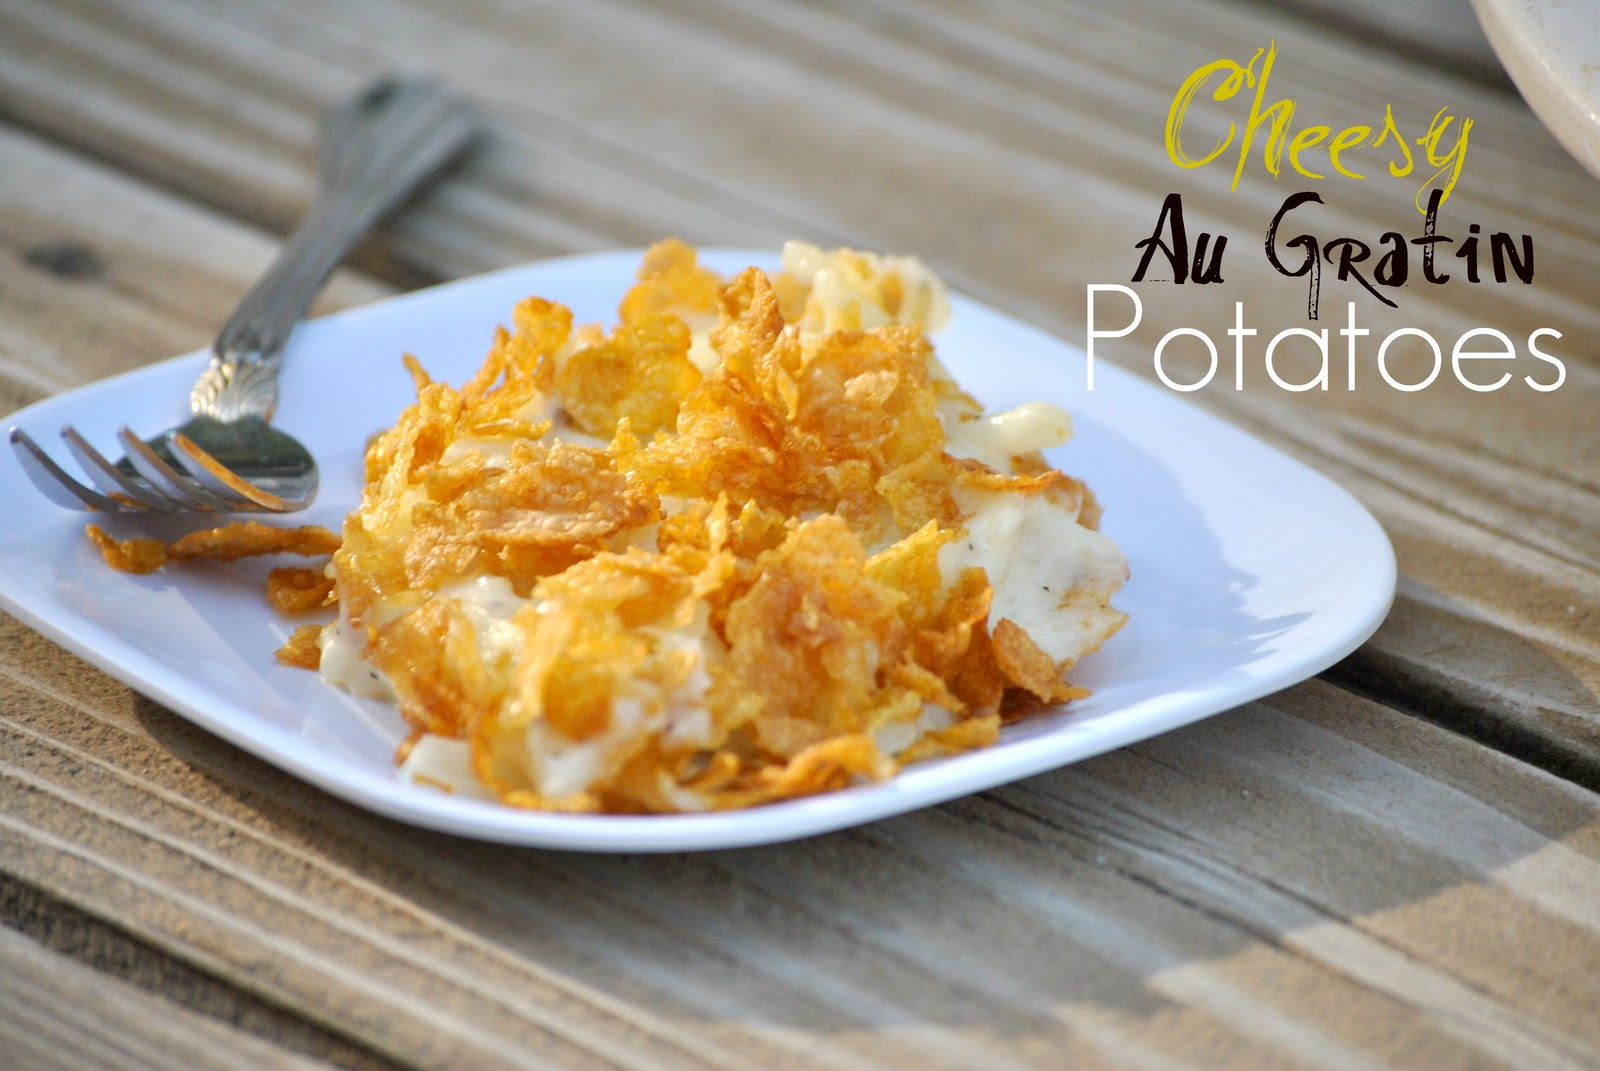 The Farm Girl Recipes: Cheesy Au Gratin Potatoes